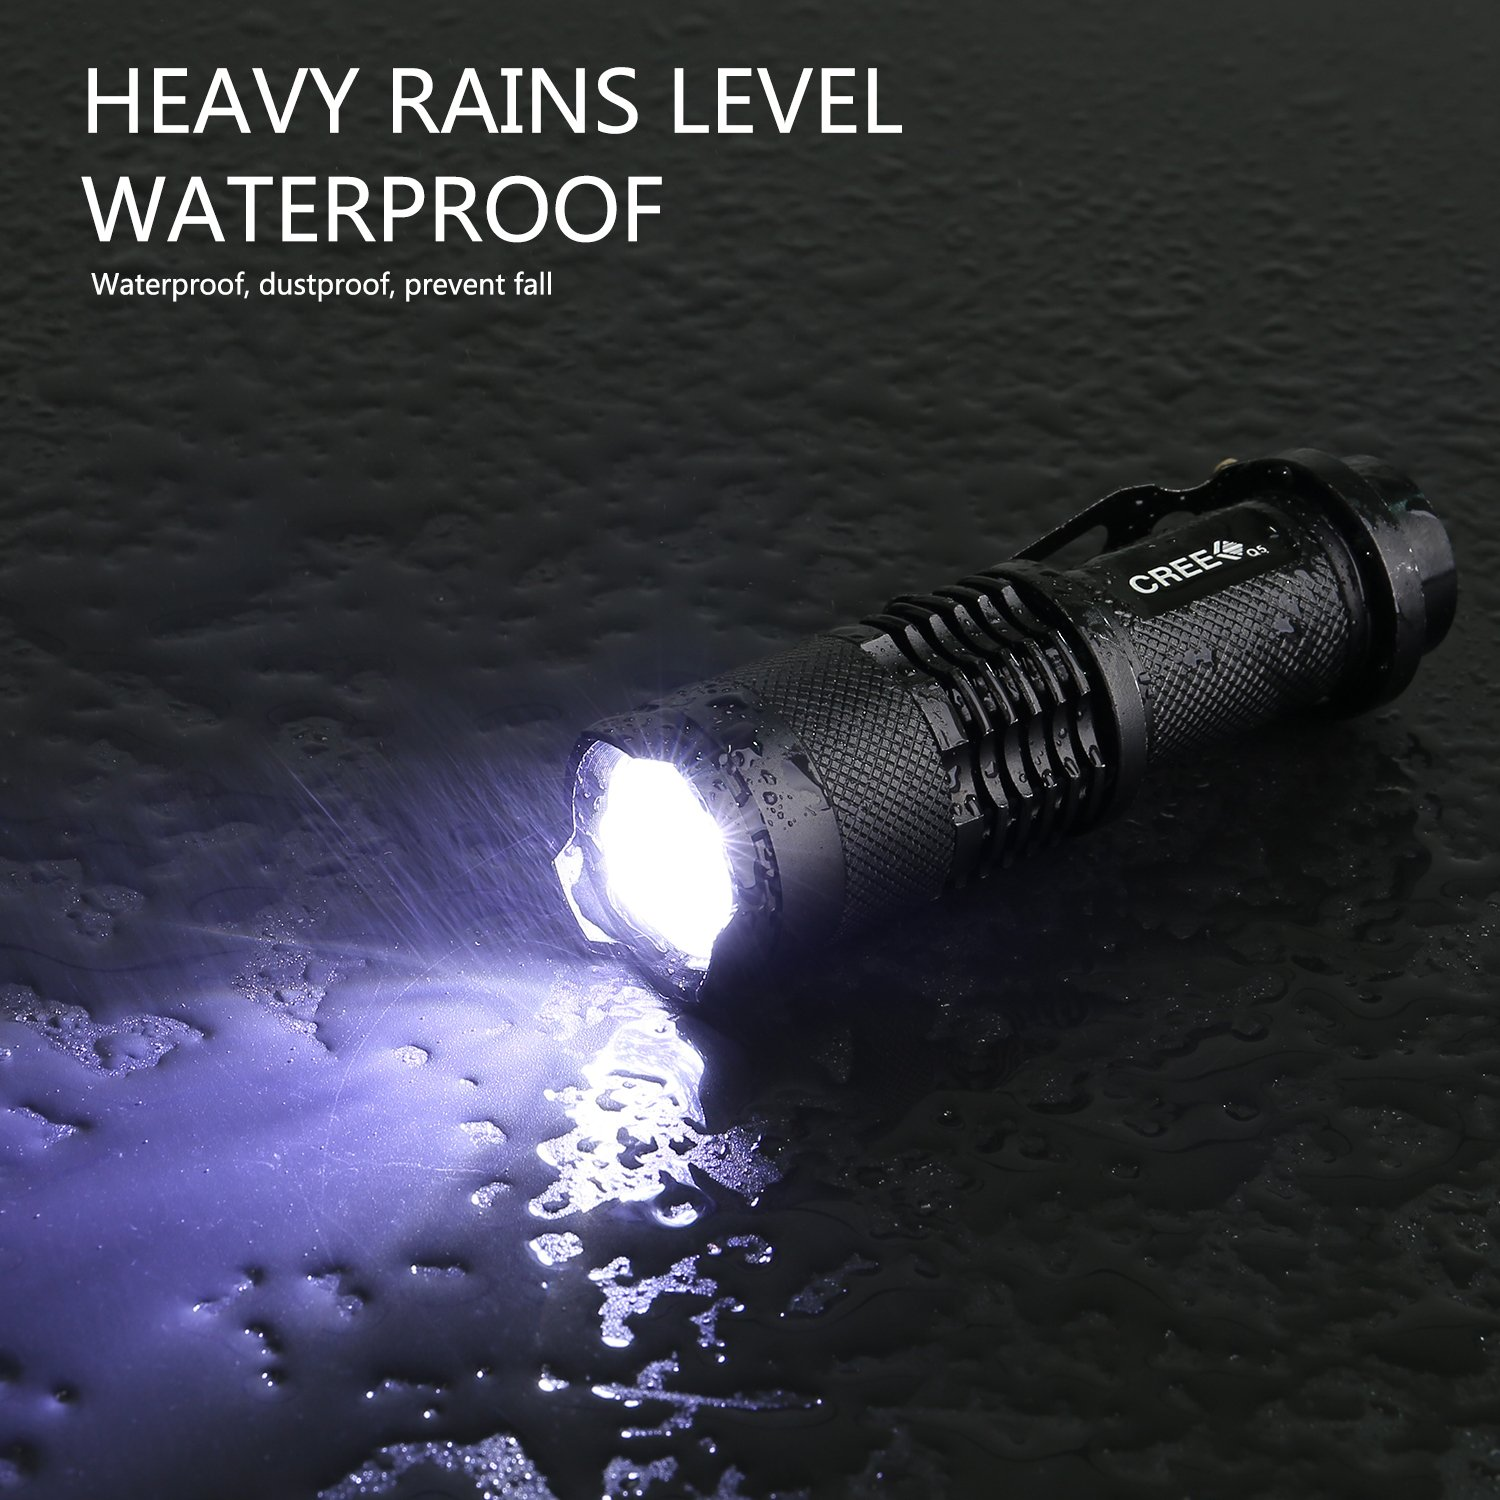 GSPON LED Flashlight,Outlite High Power 3 Mode Tactical Flashlight Handheld Waterproof Flashlight for Outdoor by GSPON (Image #4)